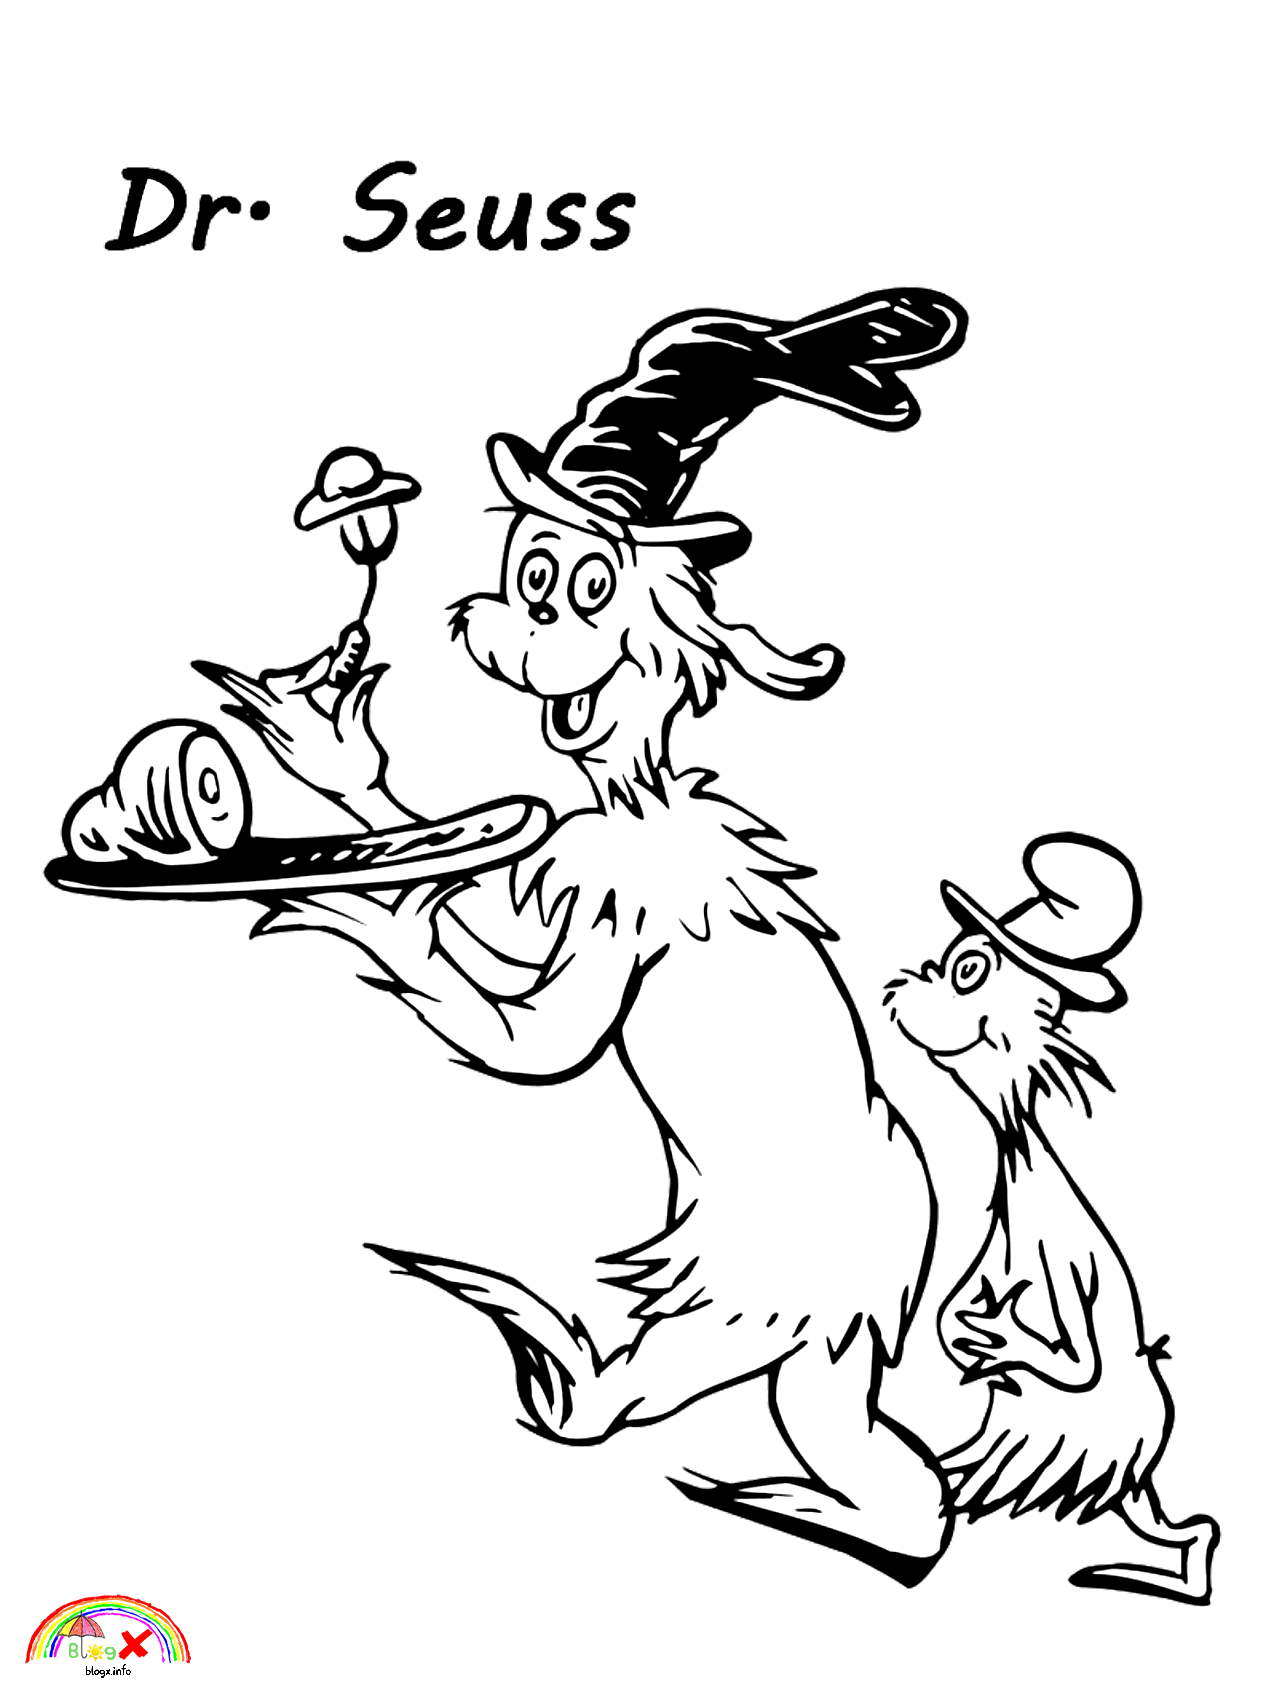 green eggs and ham coloring page green eggs and ham coloring page green coloring eggs ham and page